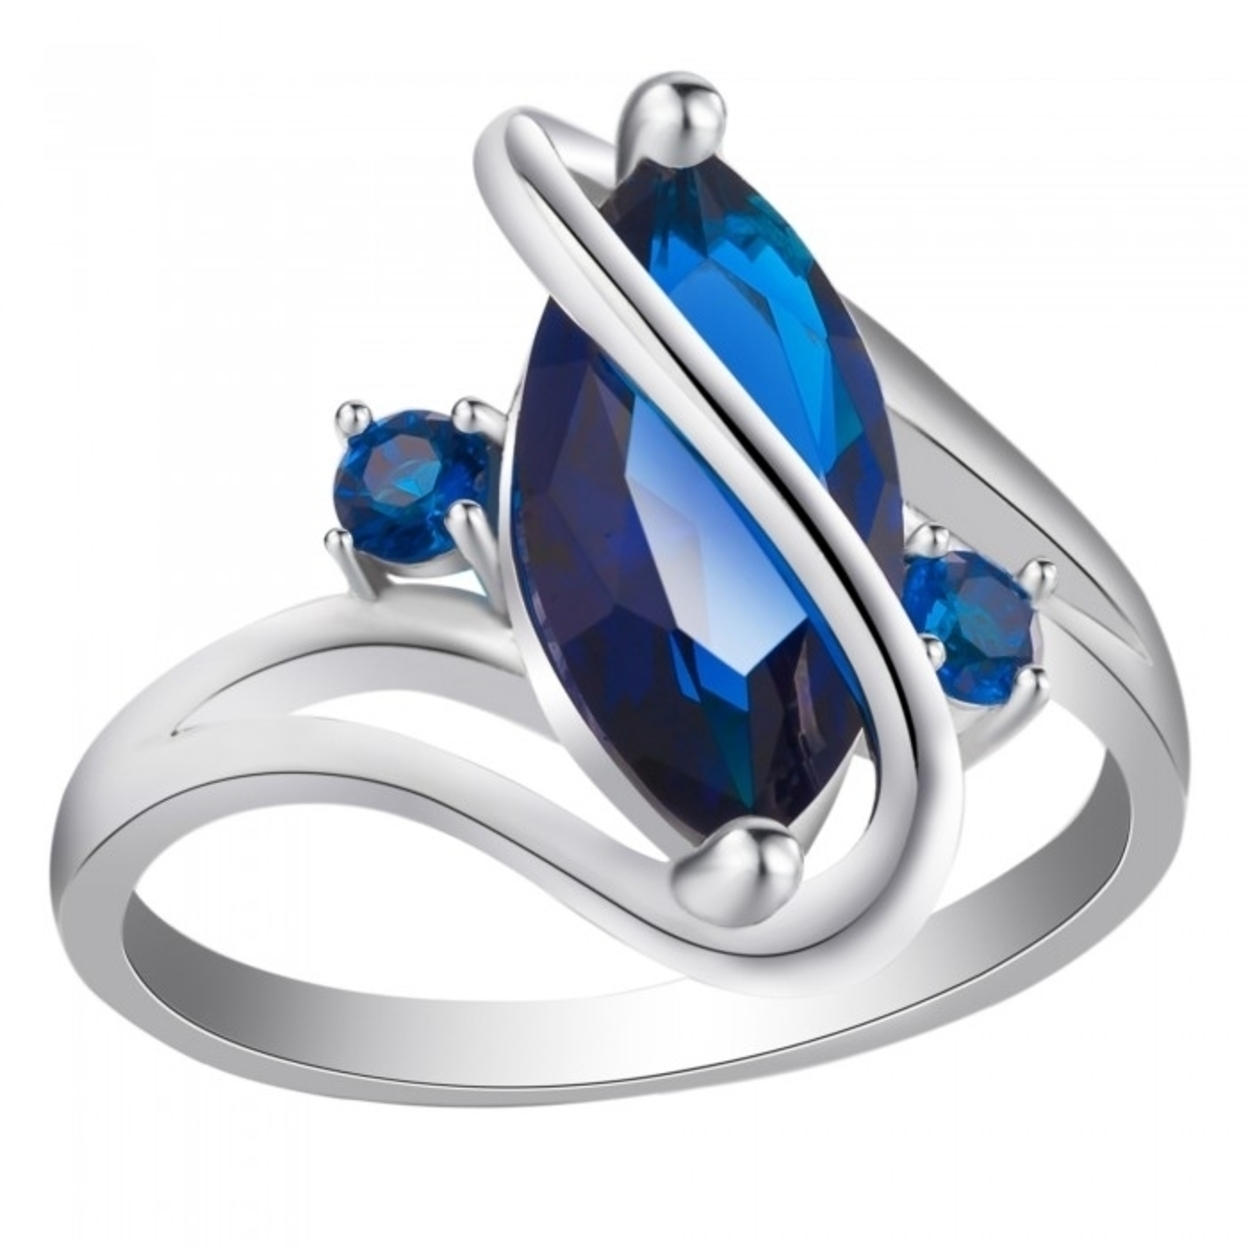 2.5 Carat Marquis Cut Blue Sapphire 10k White Gold Filled Ring Size K 16mm